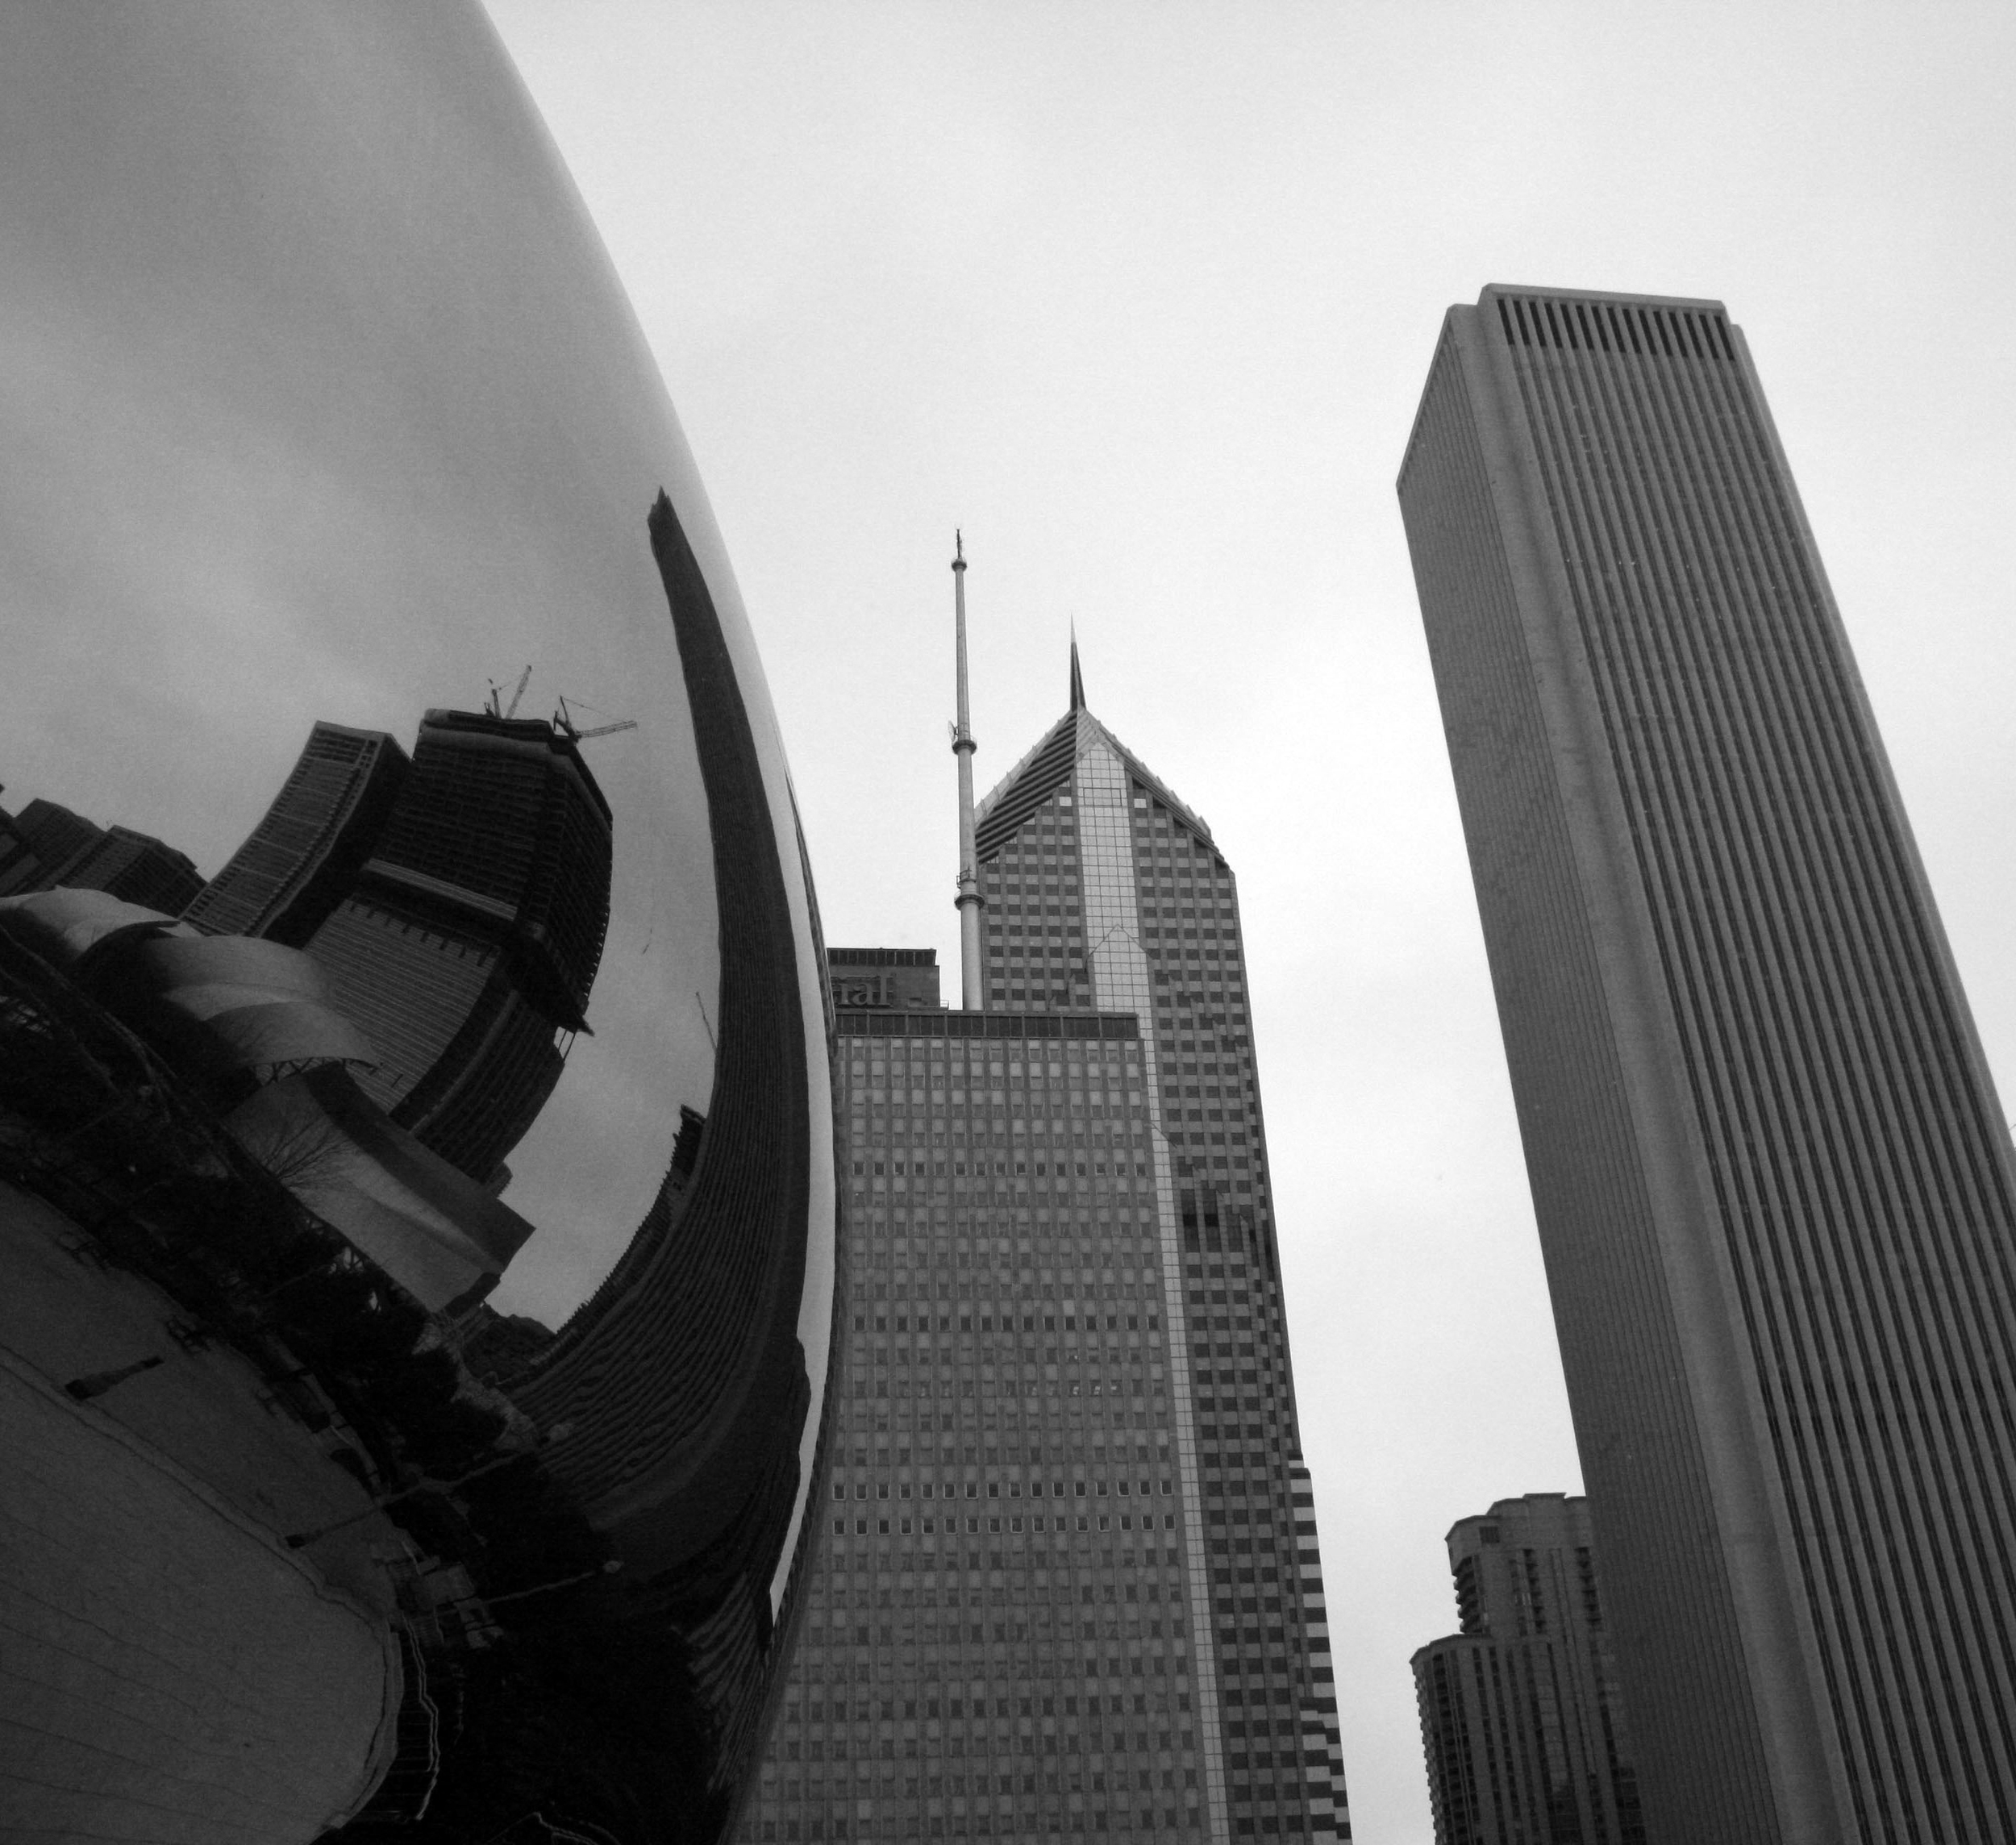 Chicago's skyline reflects in the Cloud Gate sculpture in Millennium Park.